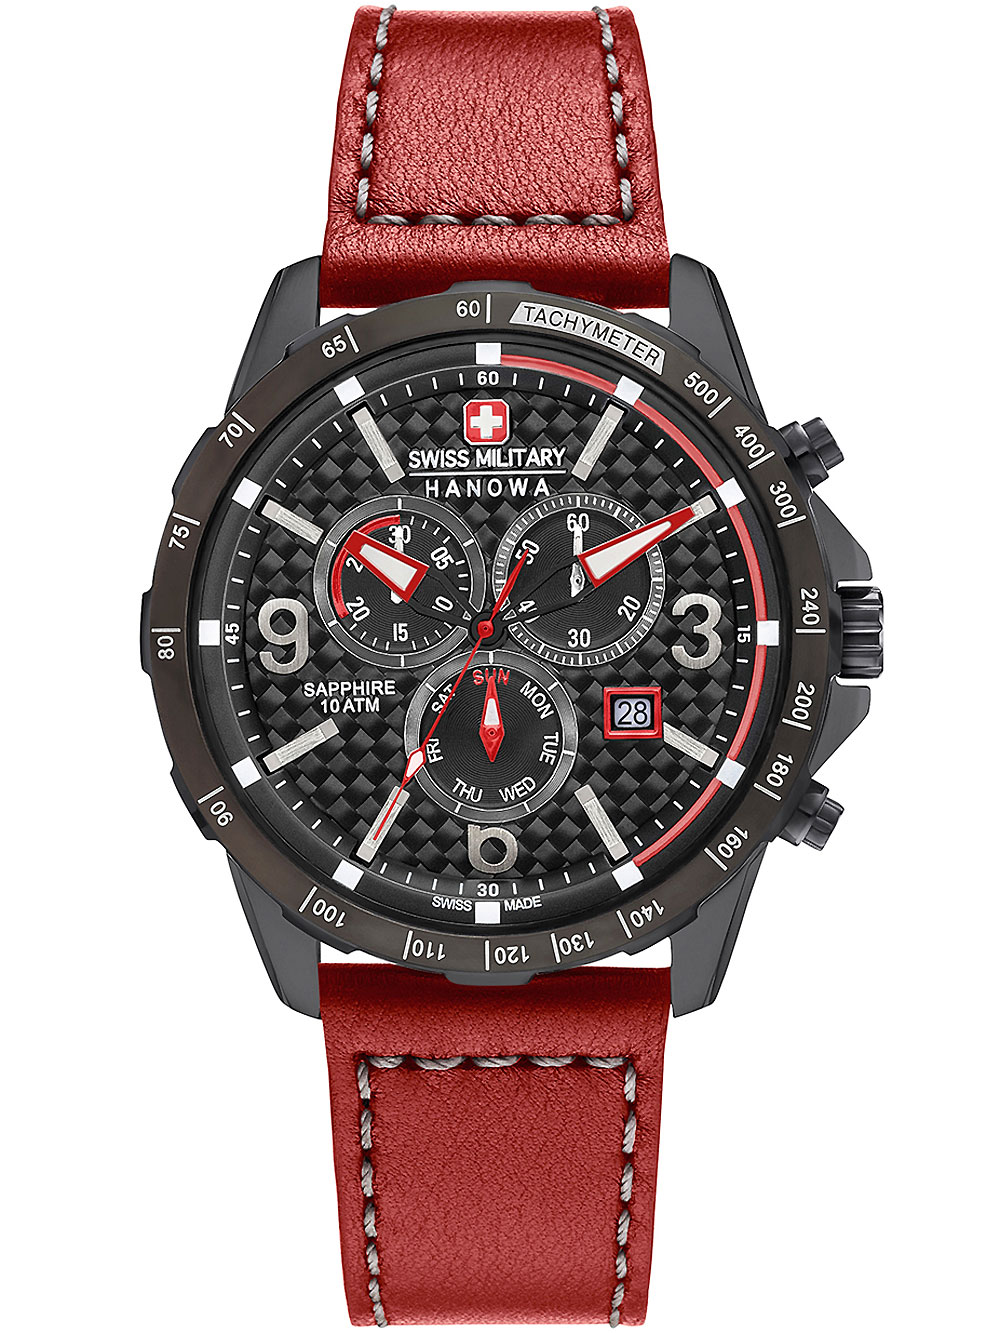 Image of Ace Herren-Chronograph Swiss Military Hanowa schwarz